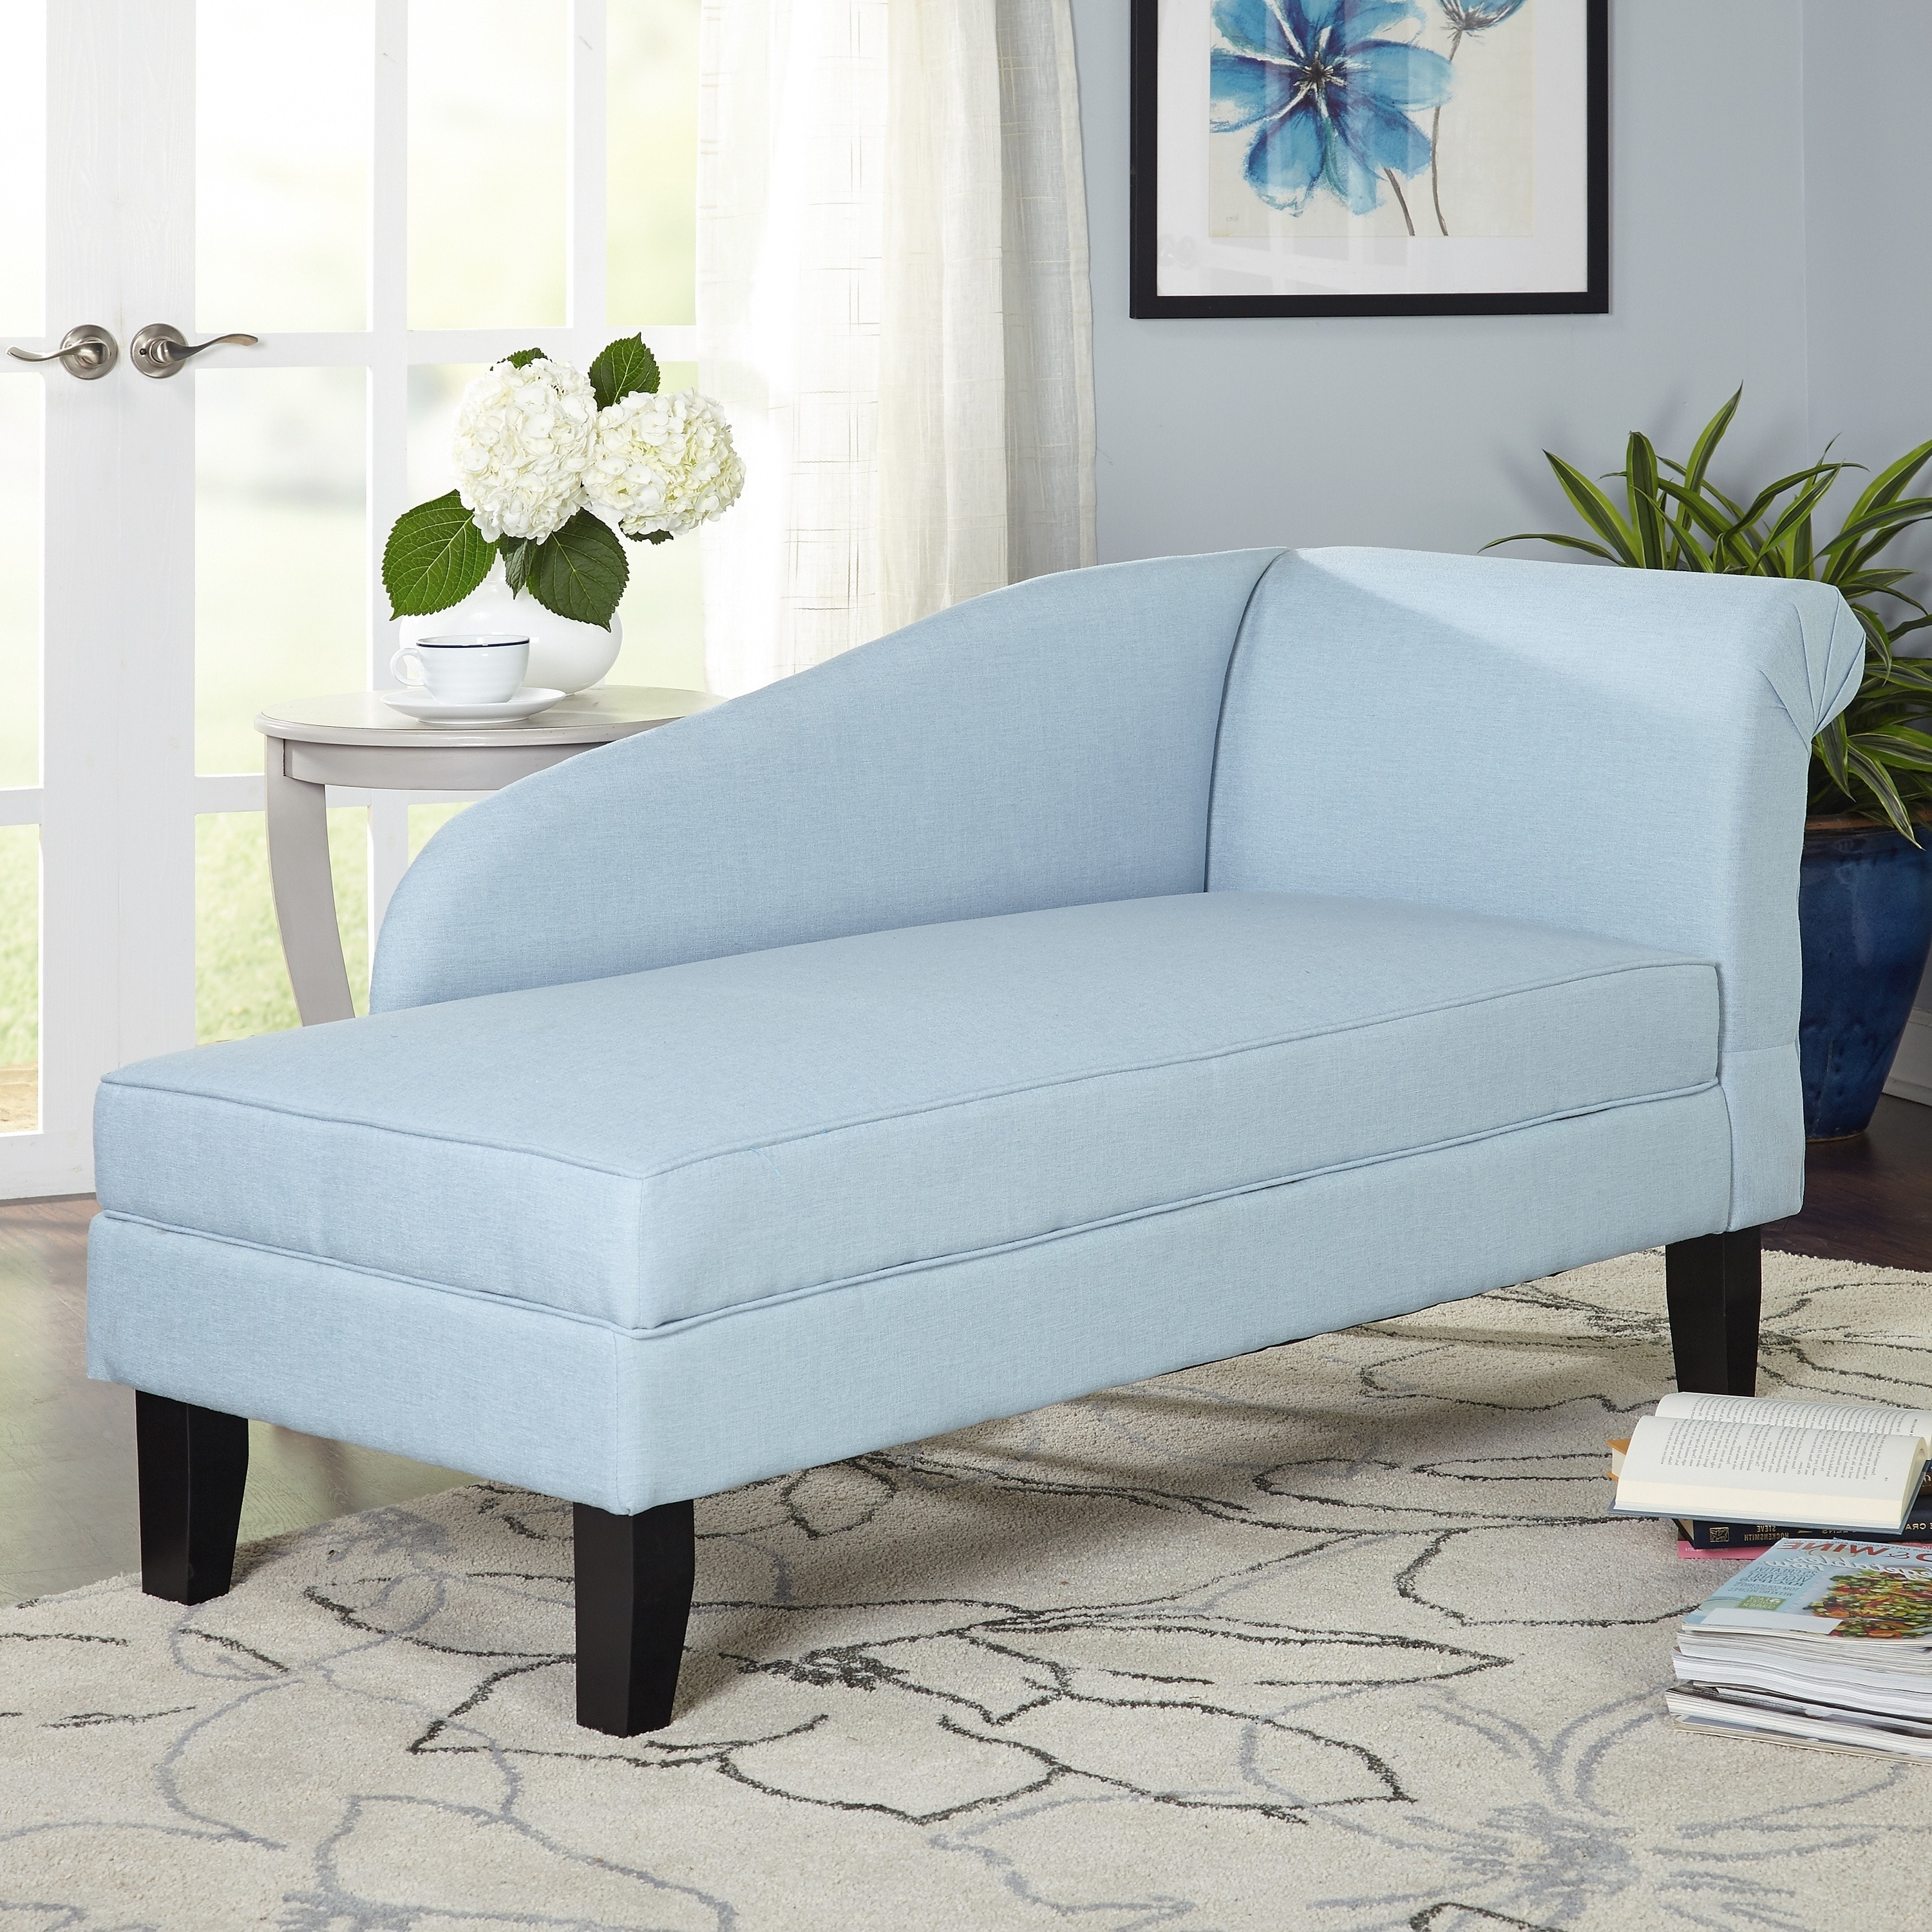 Chaise Lounges With Storage With Popular Simple Living Chaise Lounge With Storage Compartment – Free (View 6 of 15)